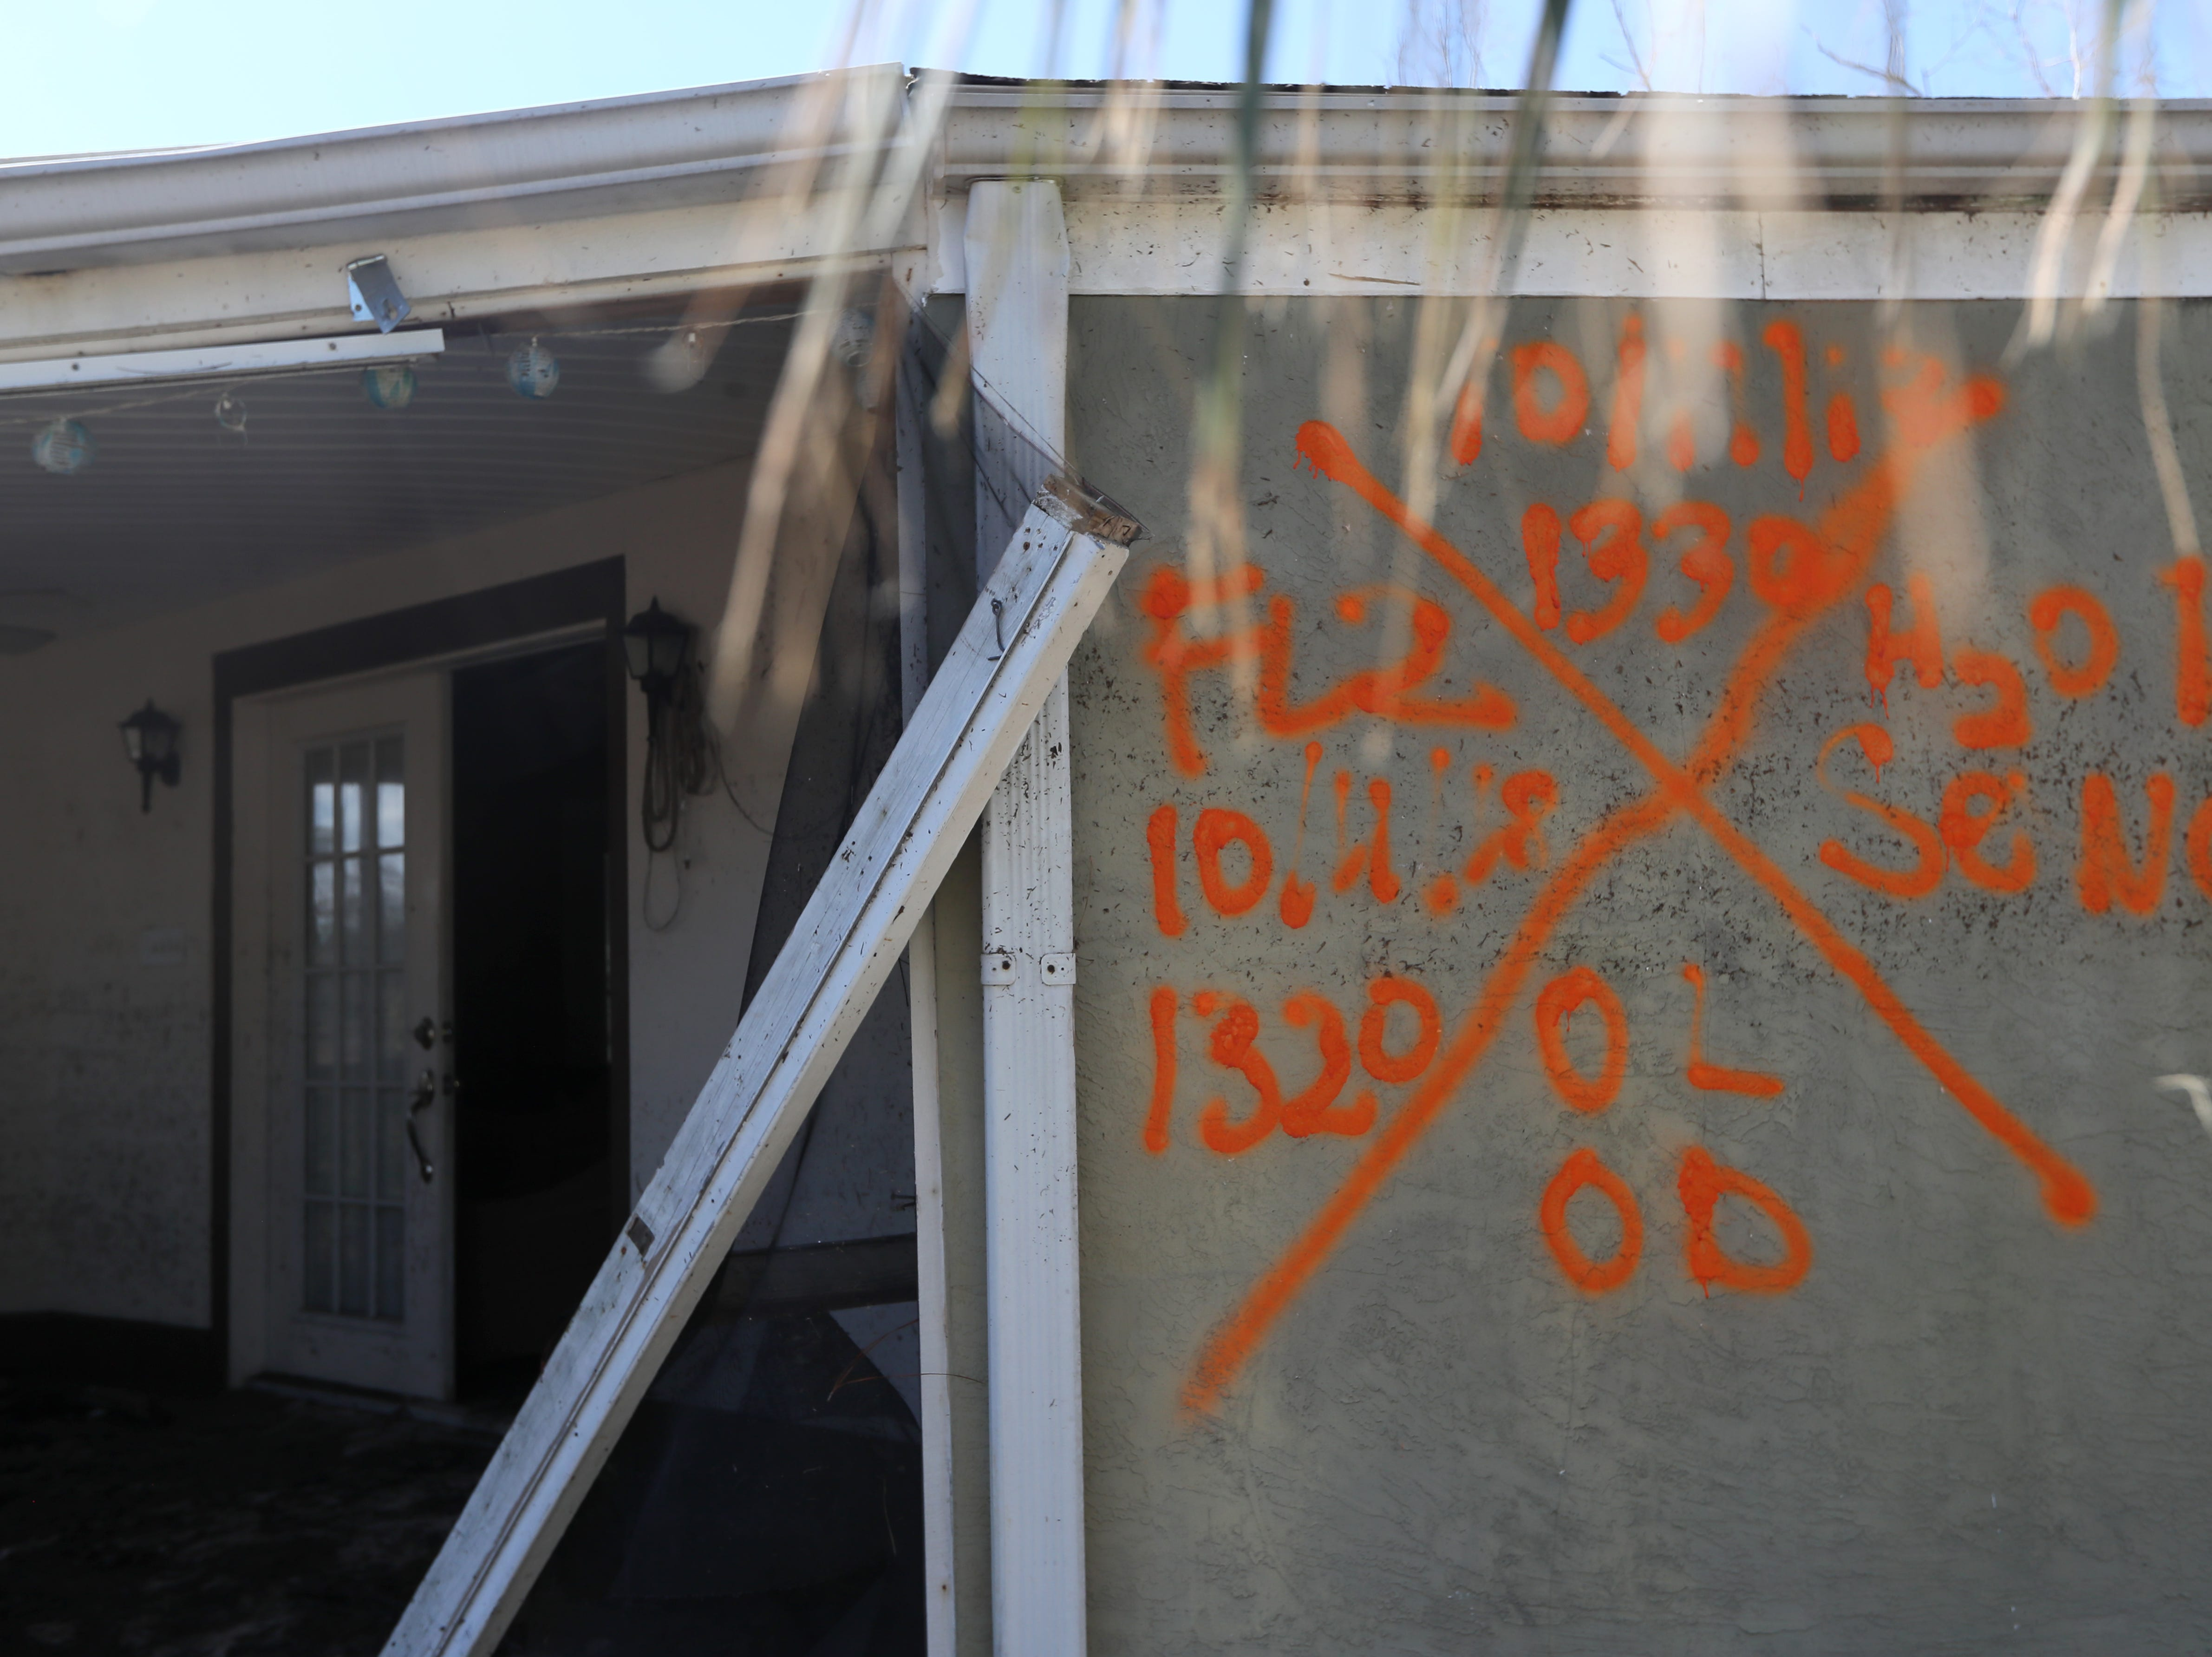 Spray painted details help to tell the story of first responder's search through dilapidated homes in Mexico Beach on Wednesday, Oct. 17, 2018, one week after Hurricane Michael ripped through the coastal Florida town.